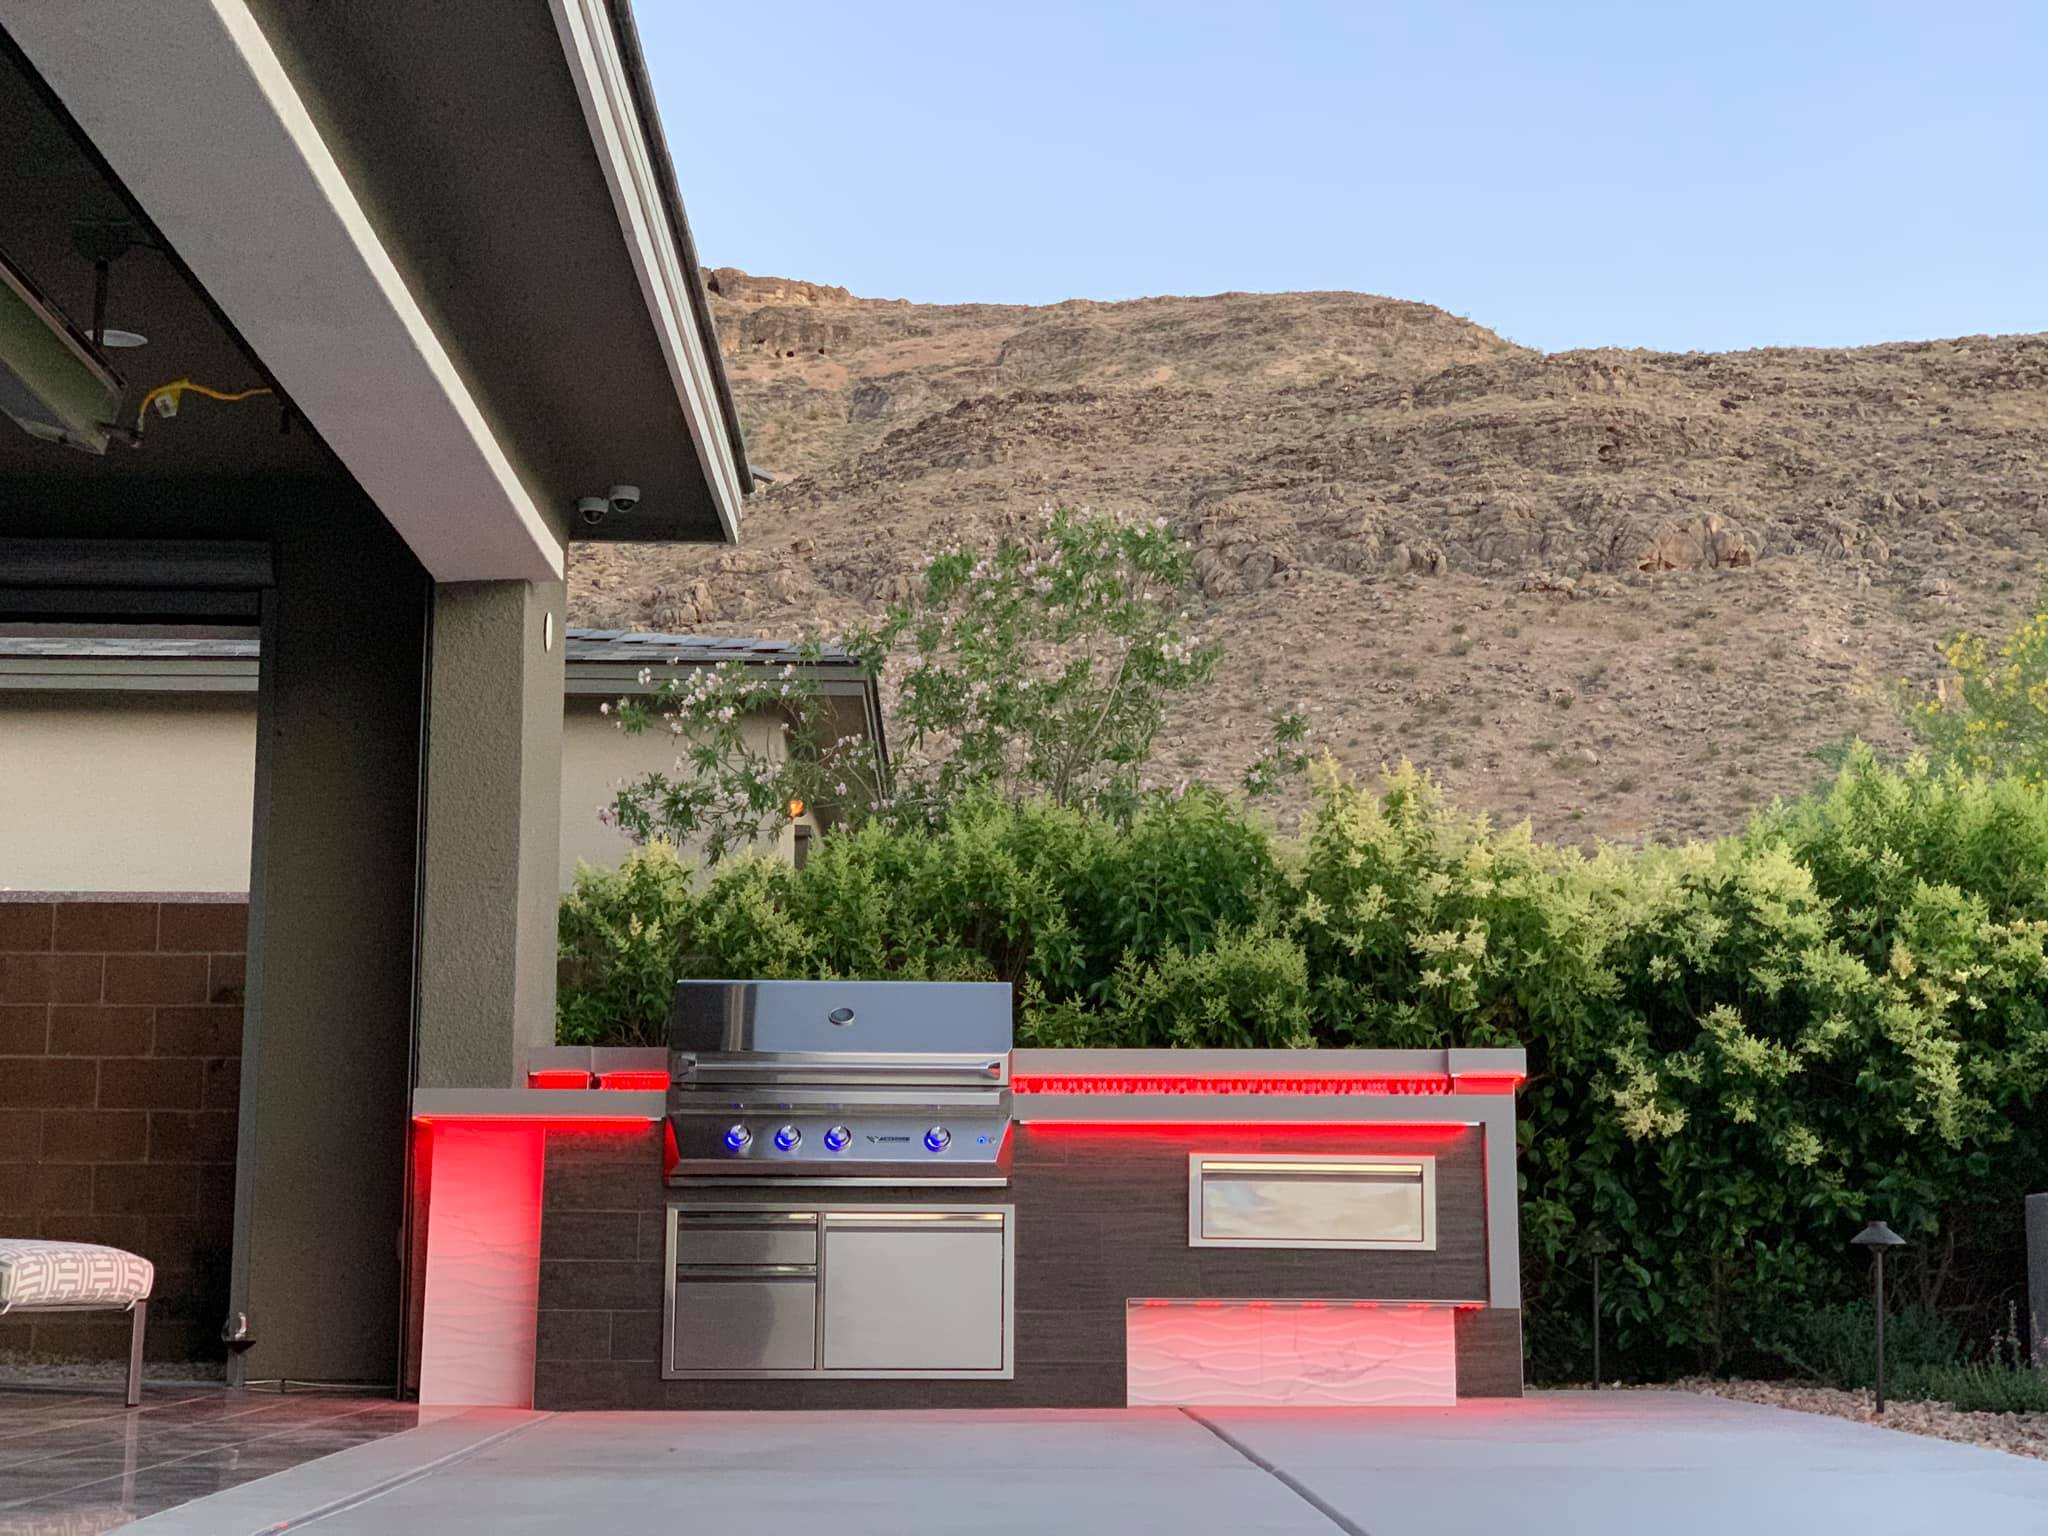 Outdoor Kitchen Twin Eagles Grill Red LED Lighting